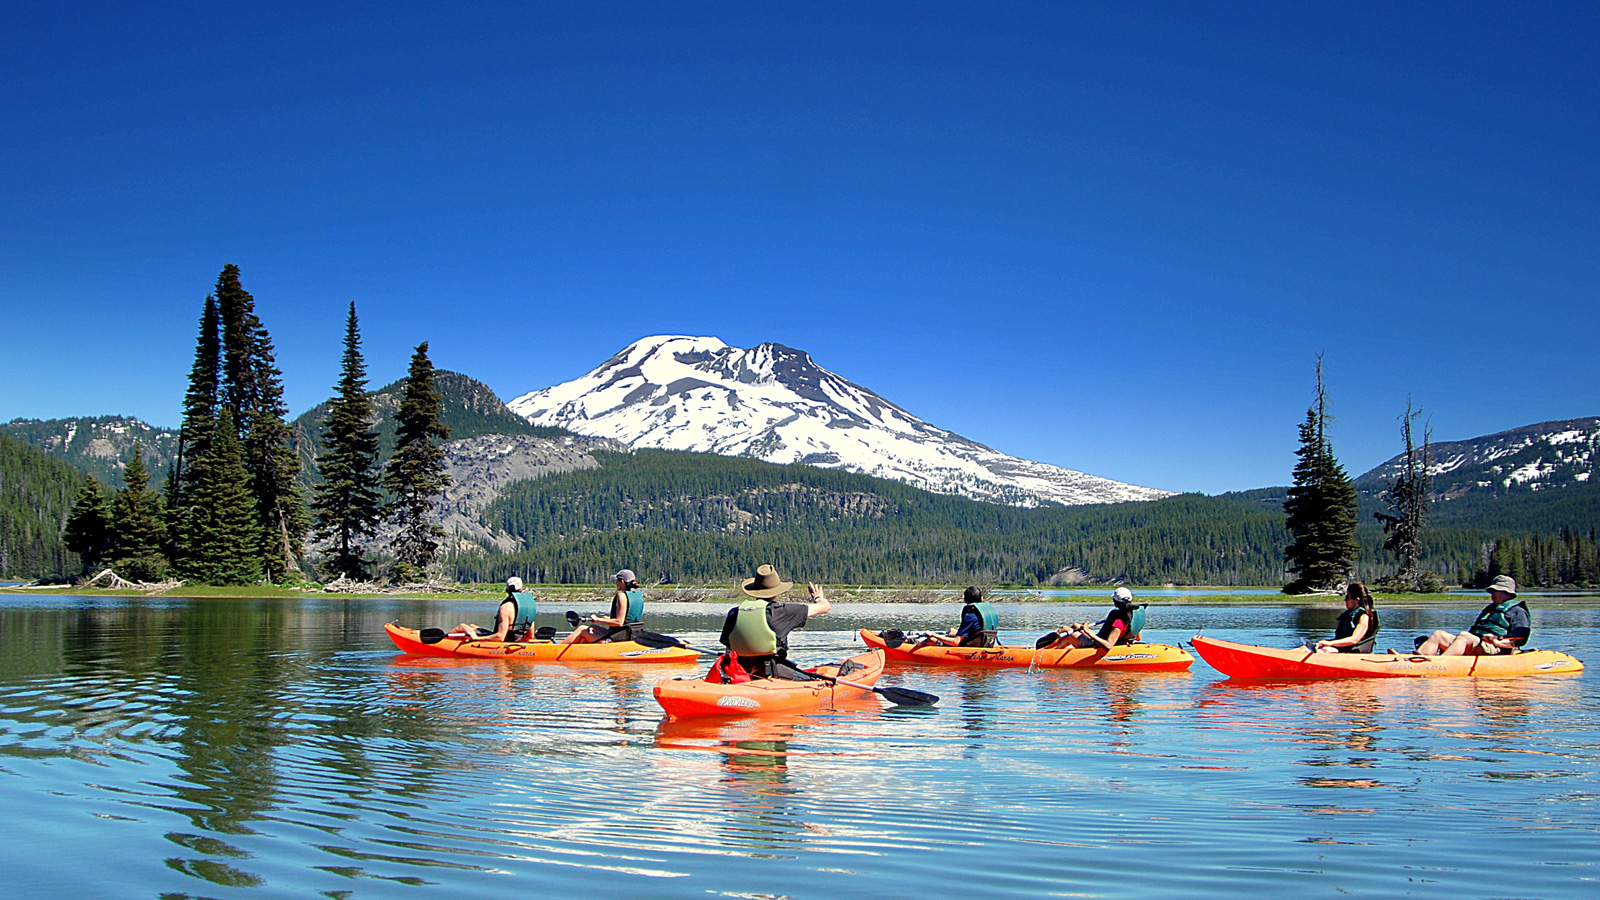 Cascades lake kayak tour from Wanderlust Tours in Bend, Oregon.